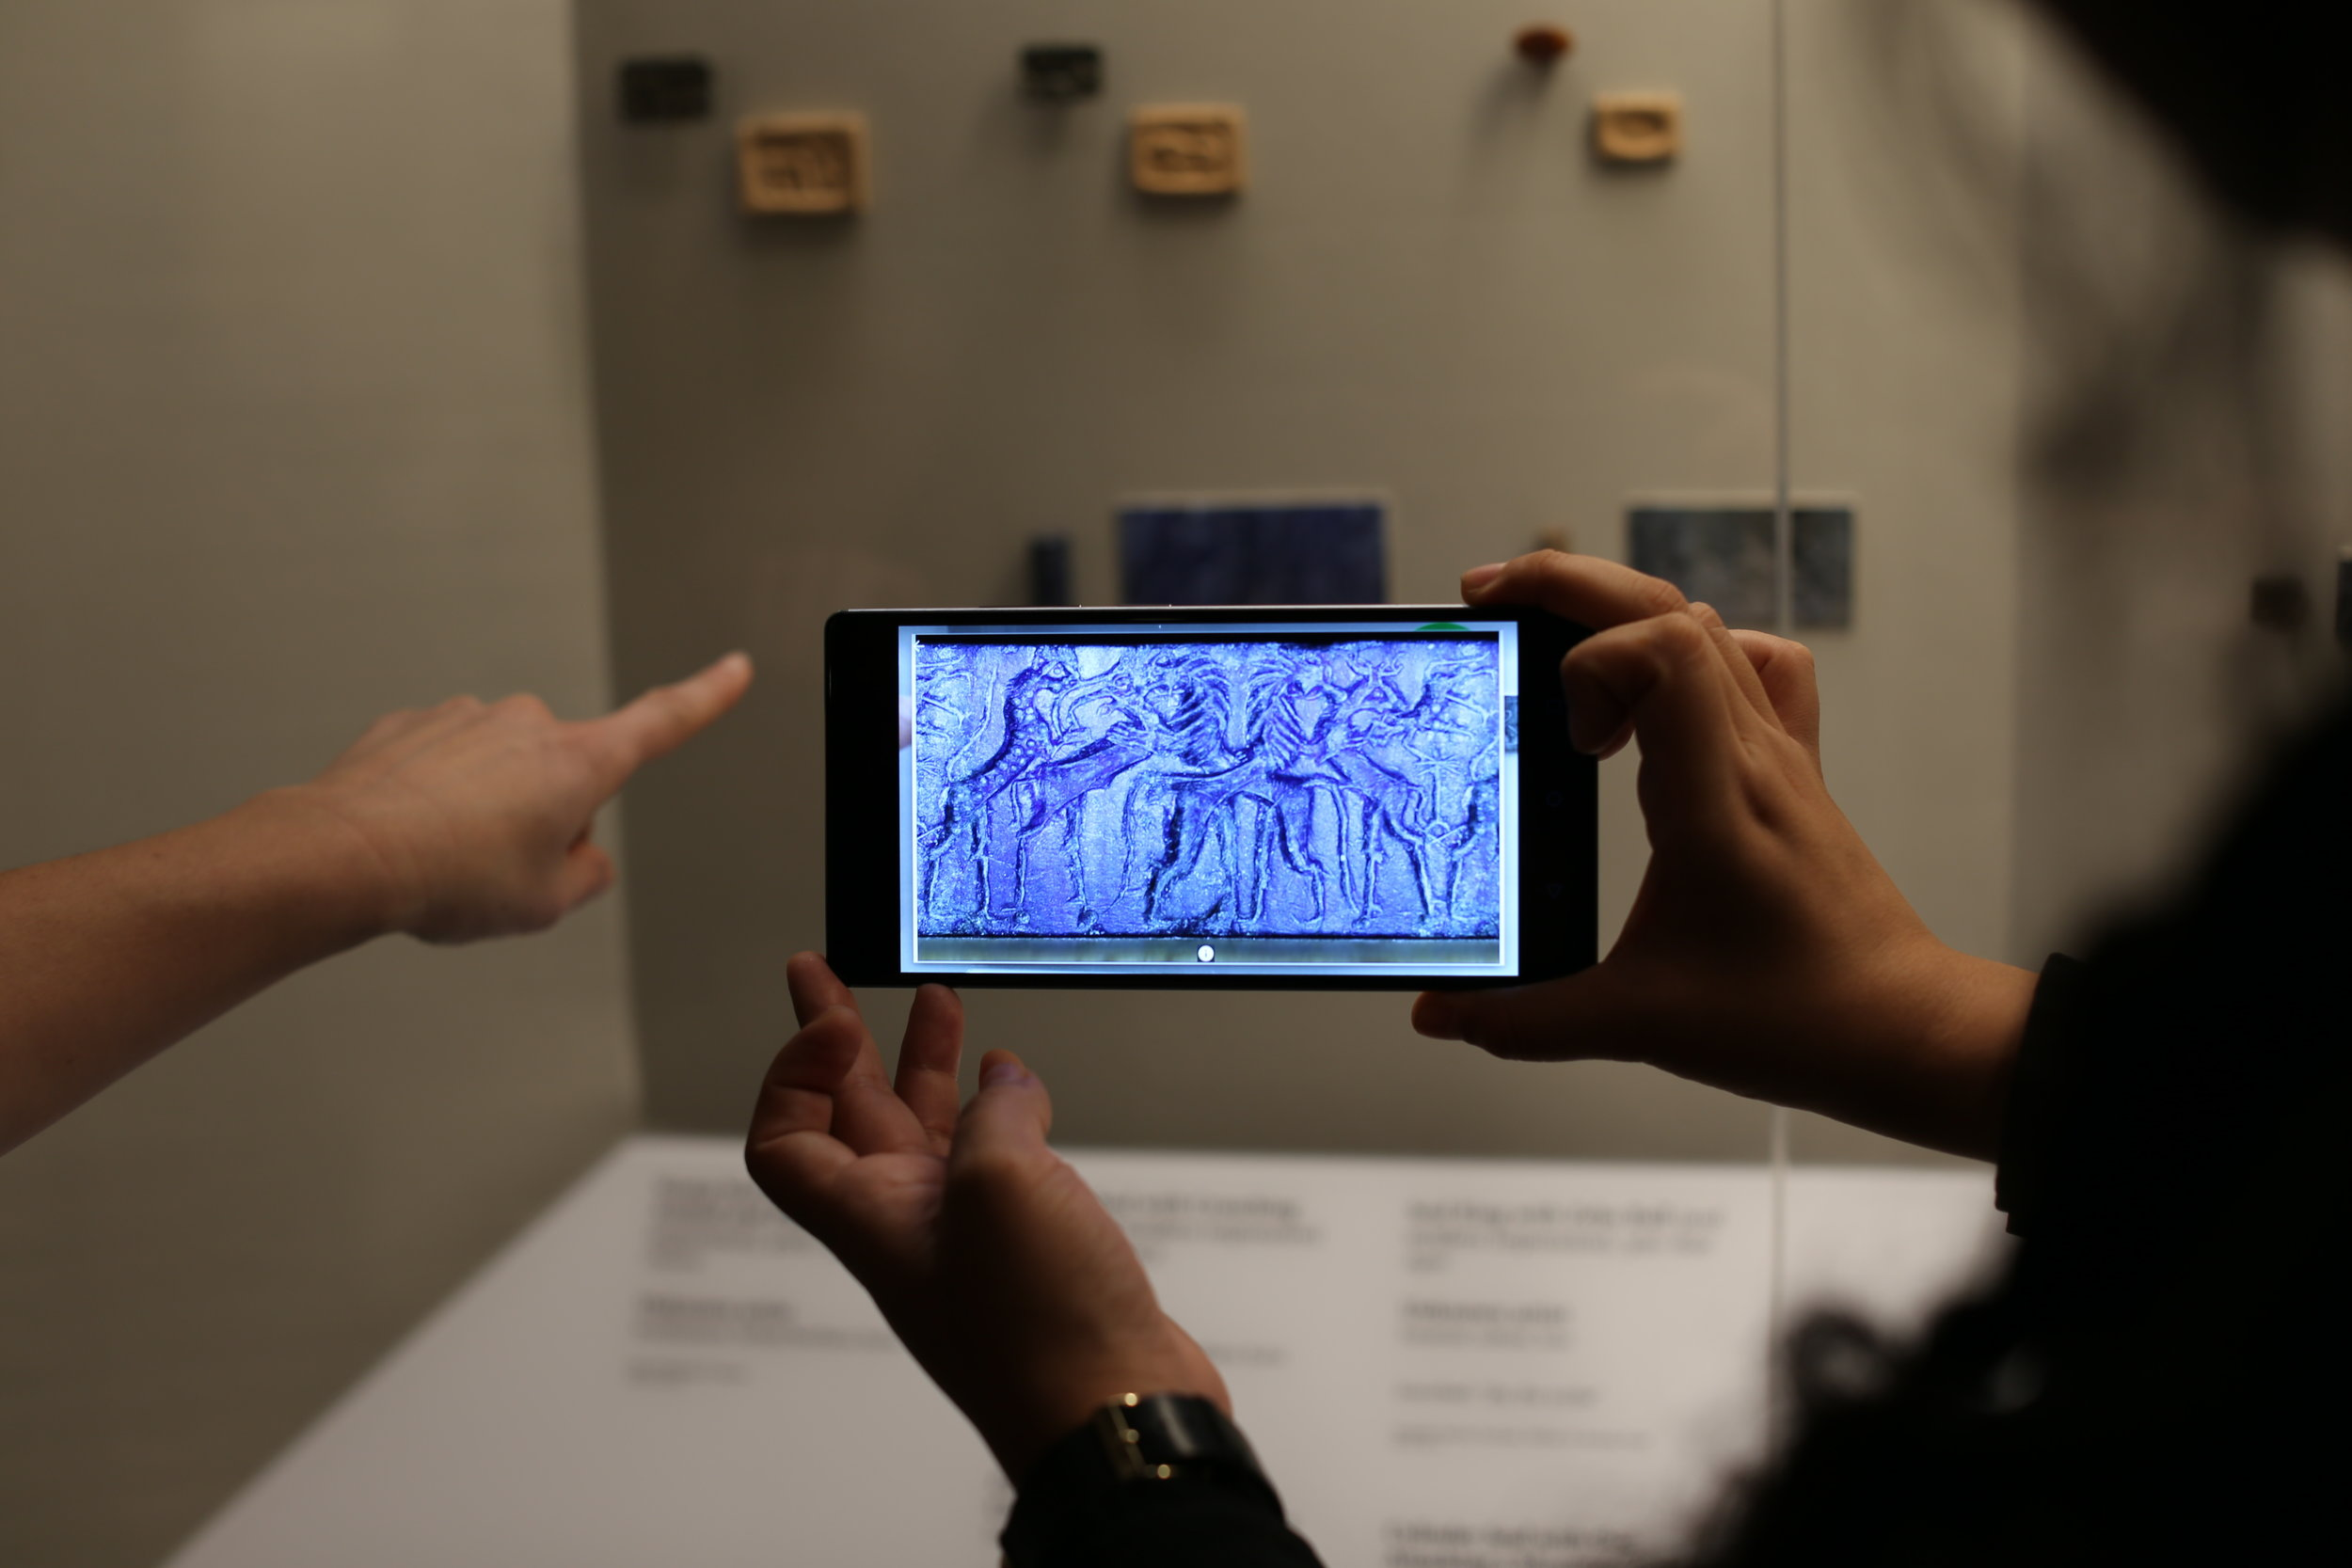 Guests using the Lumin tool at the Detroit Institute of Art. Source: Detroit Institute of Art    https://www.dia.org/lumin